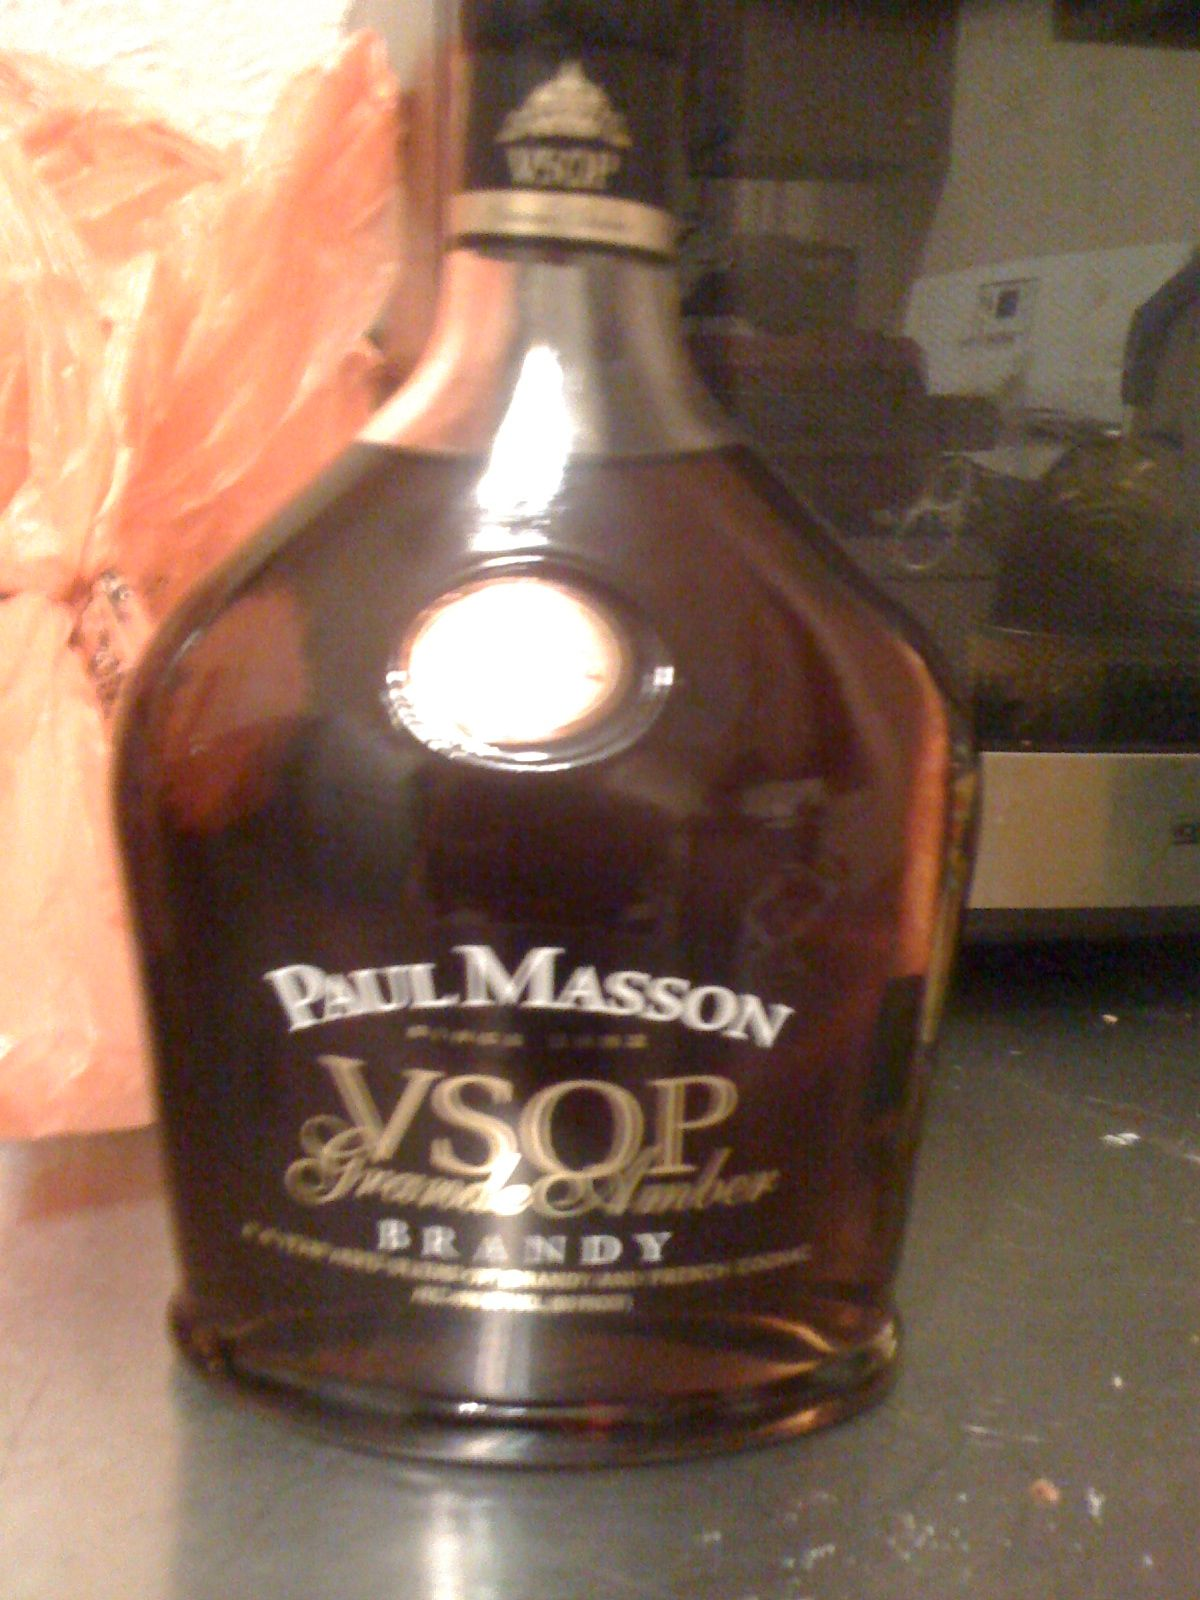 Photo I took of a bottle of Paul Masson VSOP. *Amanda Gard (Mandi Gard's) photography*